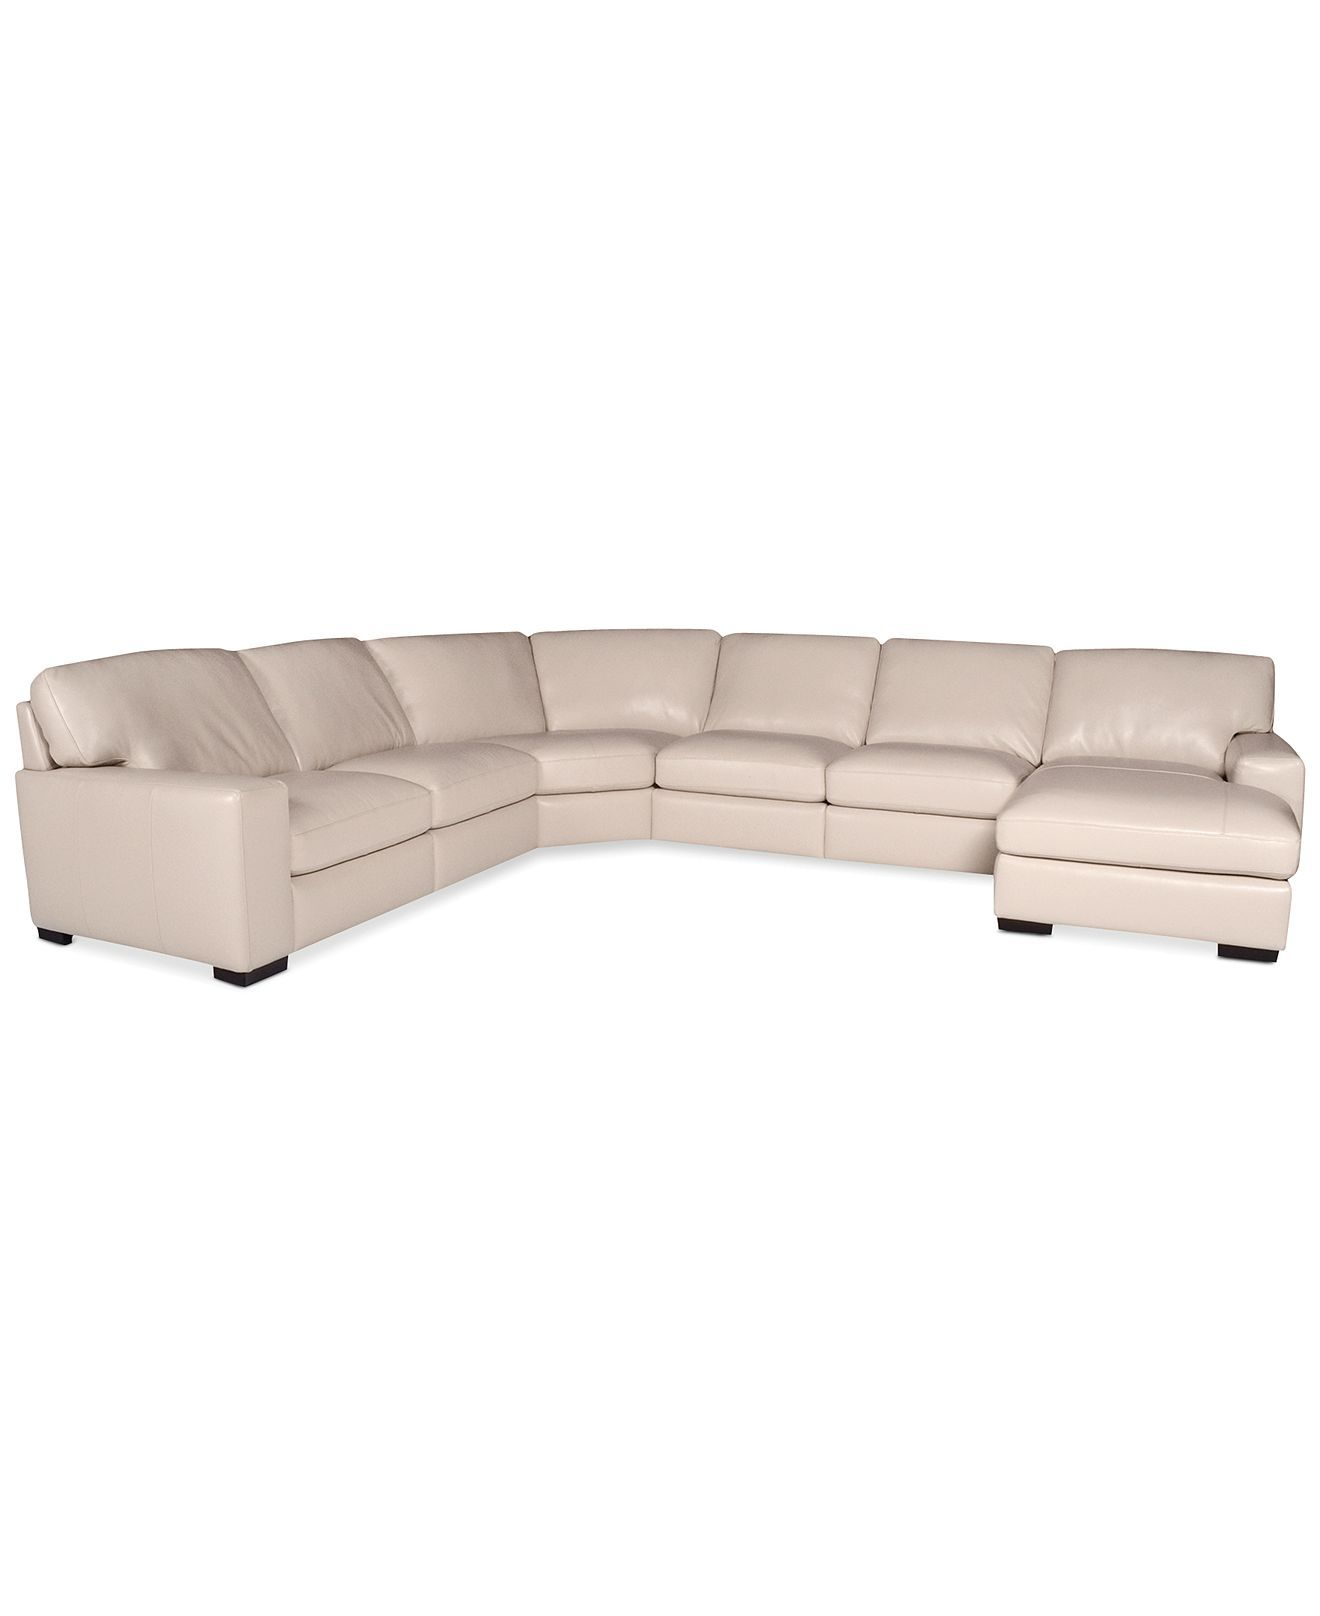 martino leather chaise sectional sofa 2 piece apartment and crate barrel in oyster fabrizio 6